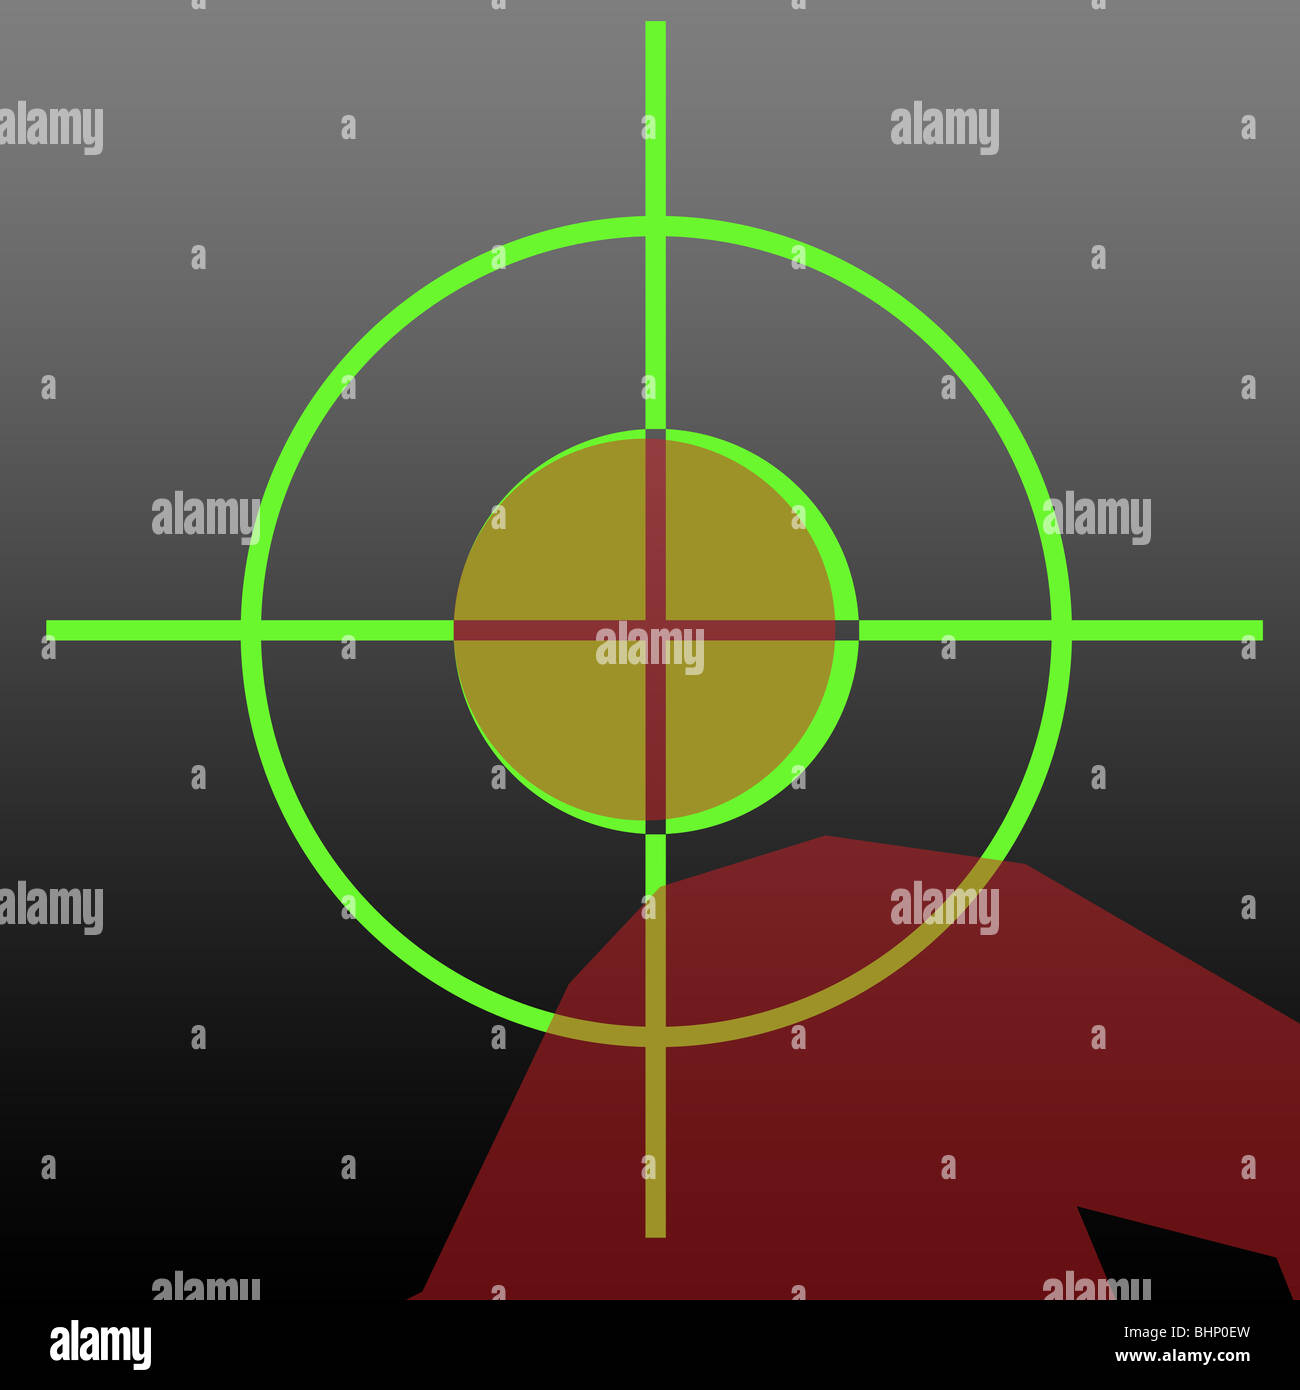 Sniper rifle night sight aiming at human head. - Stock Image